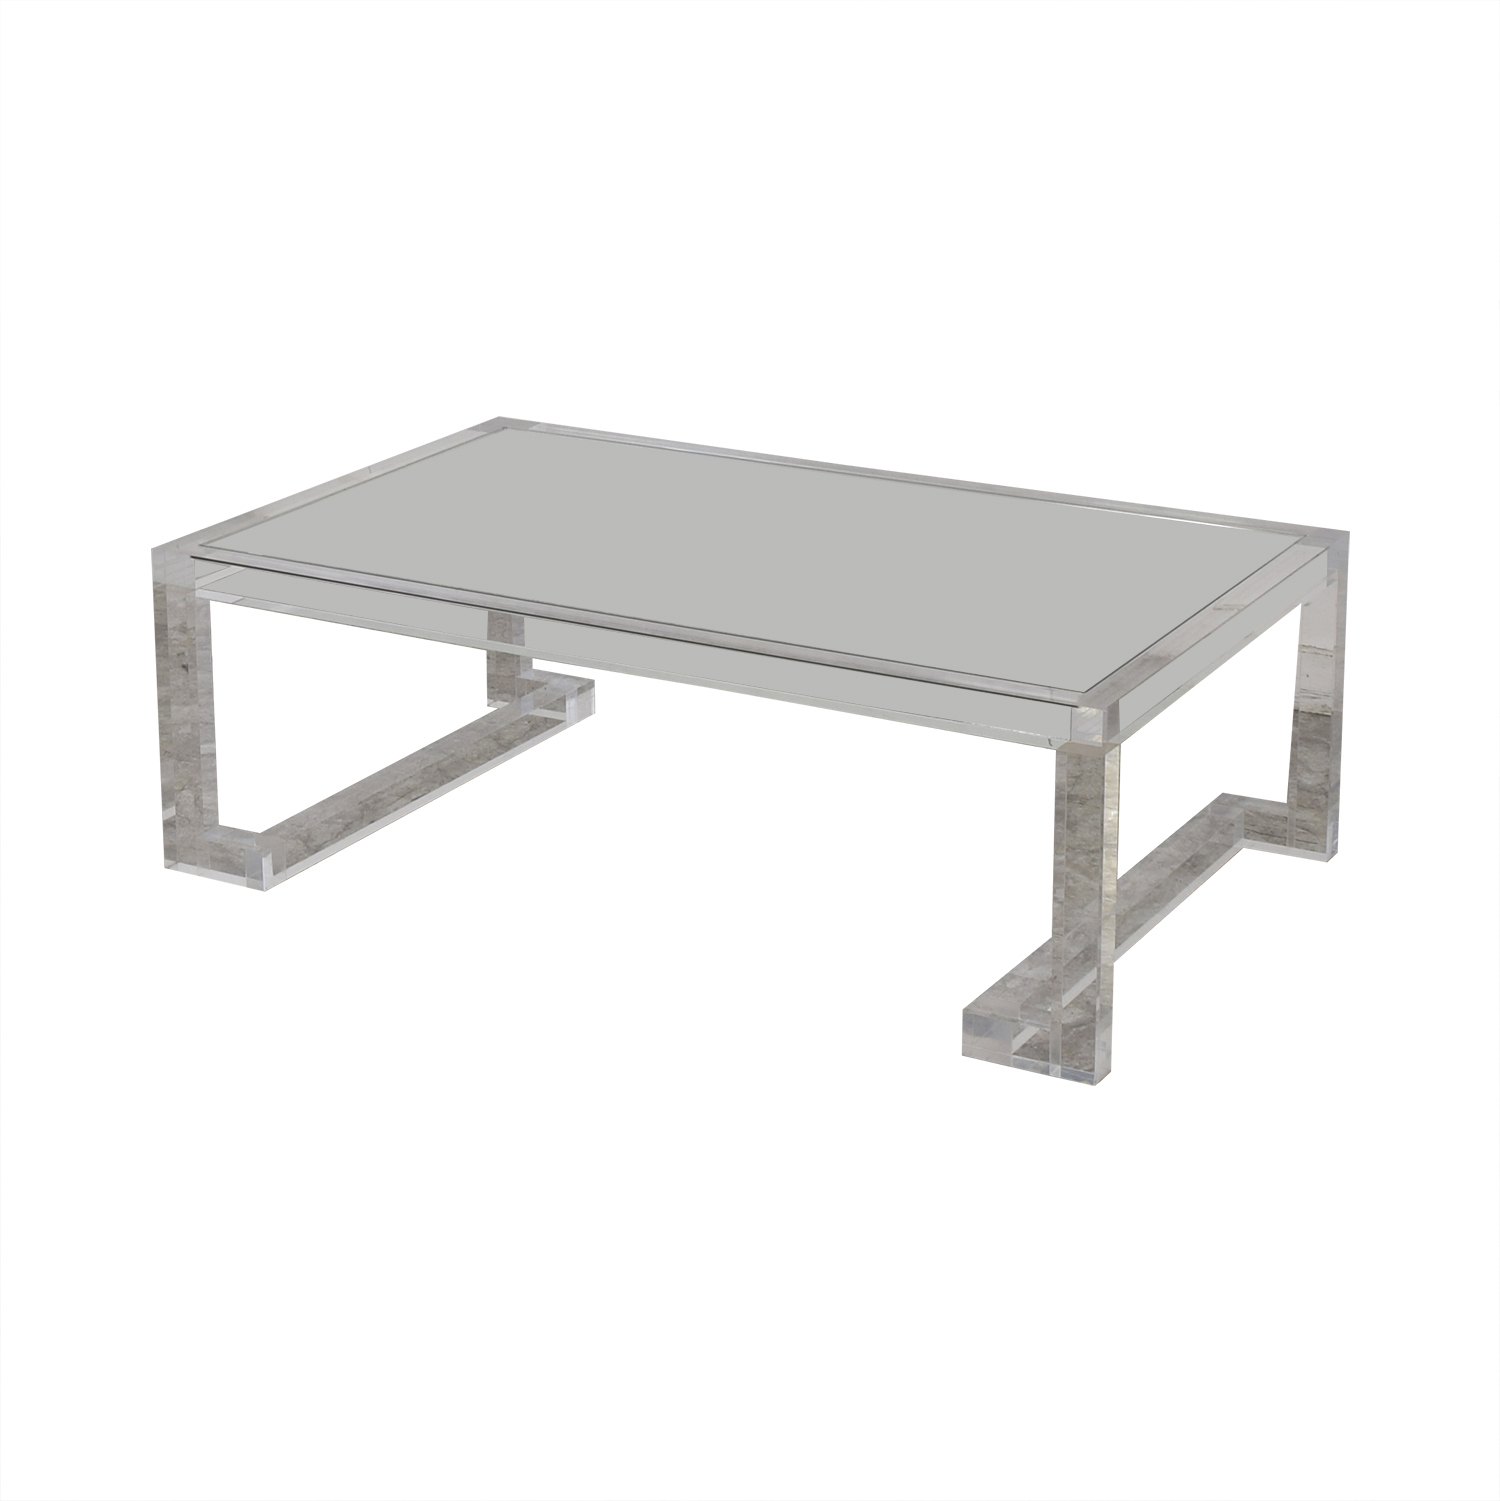 Lillian August Lillian August Ava Ghost Coffee Table dimensions